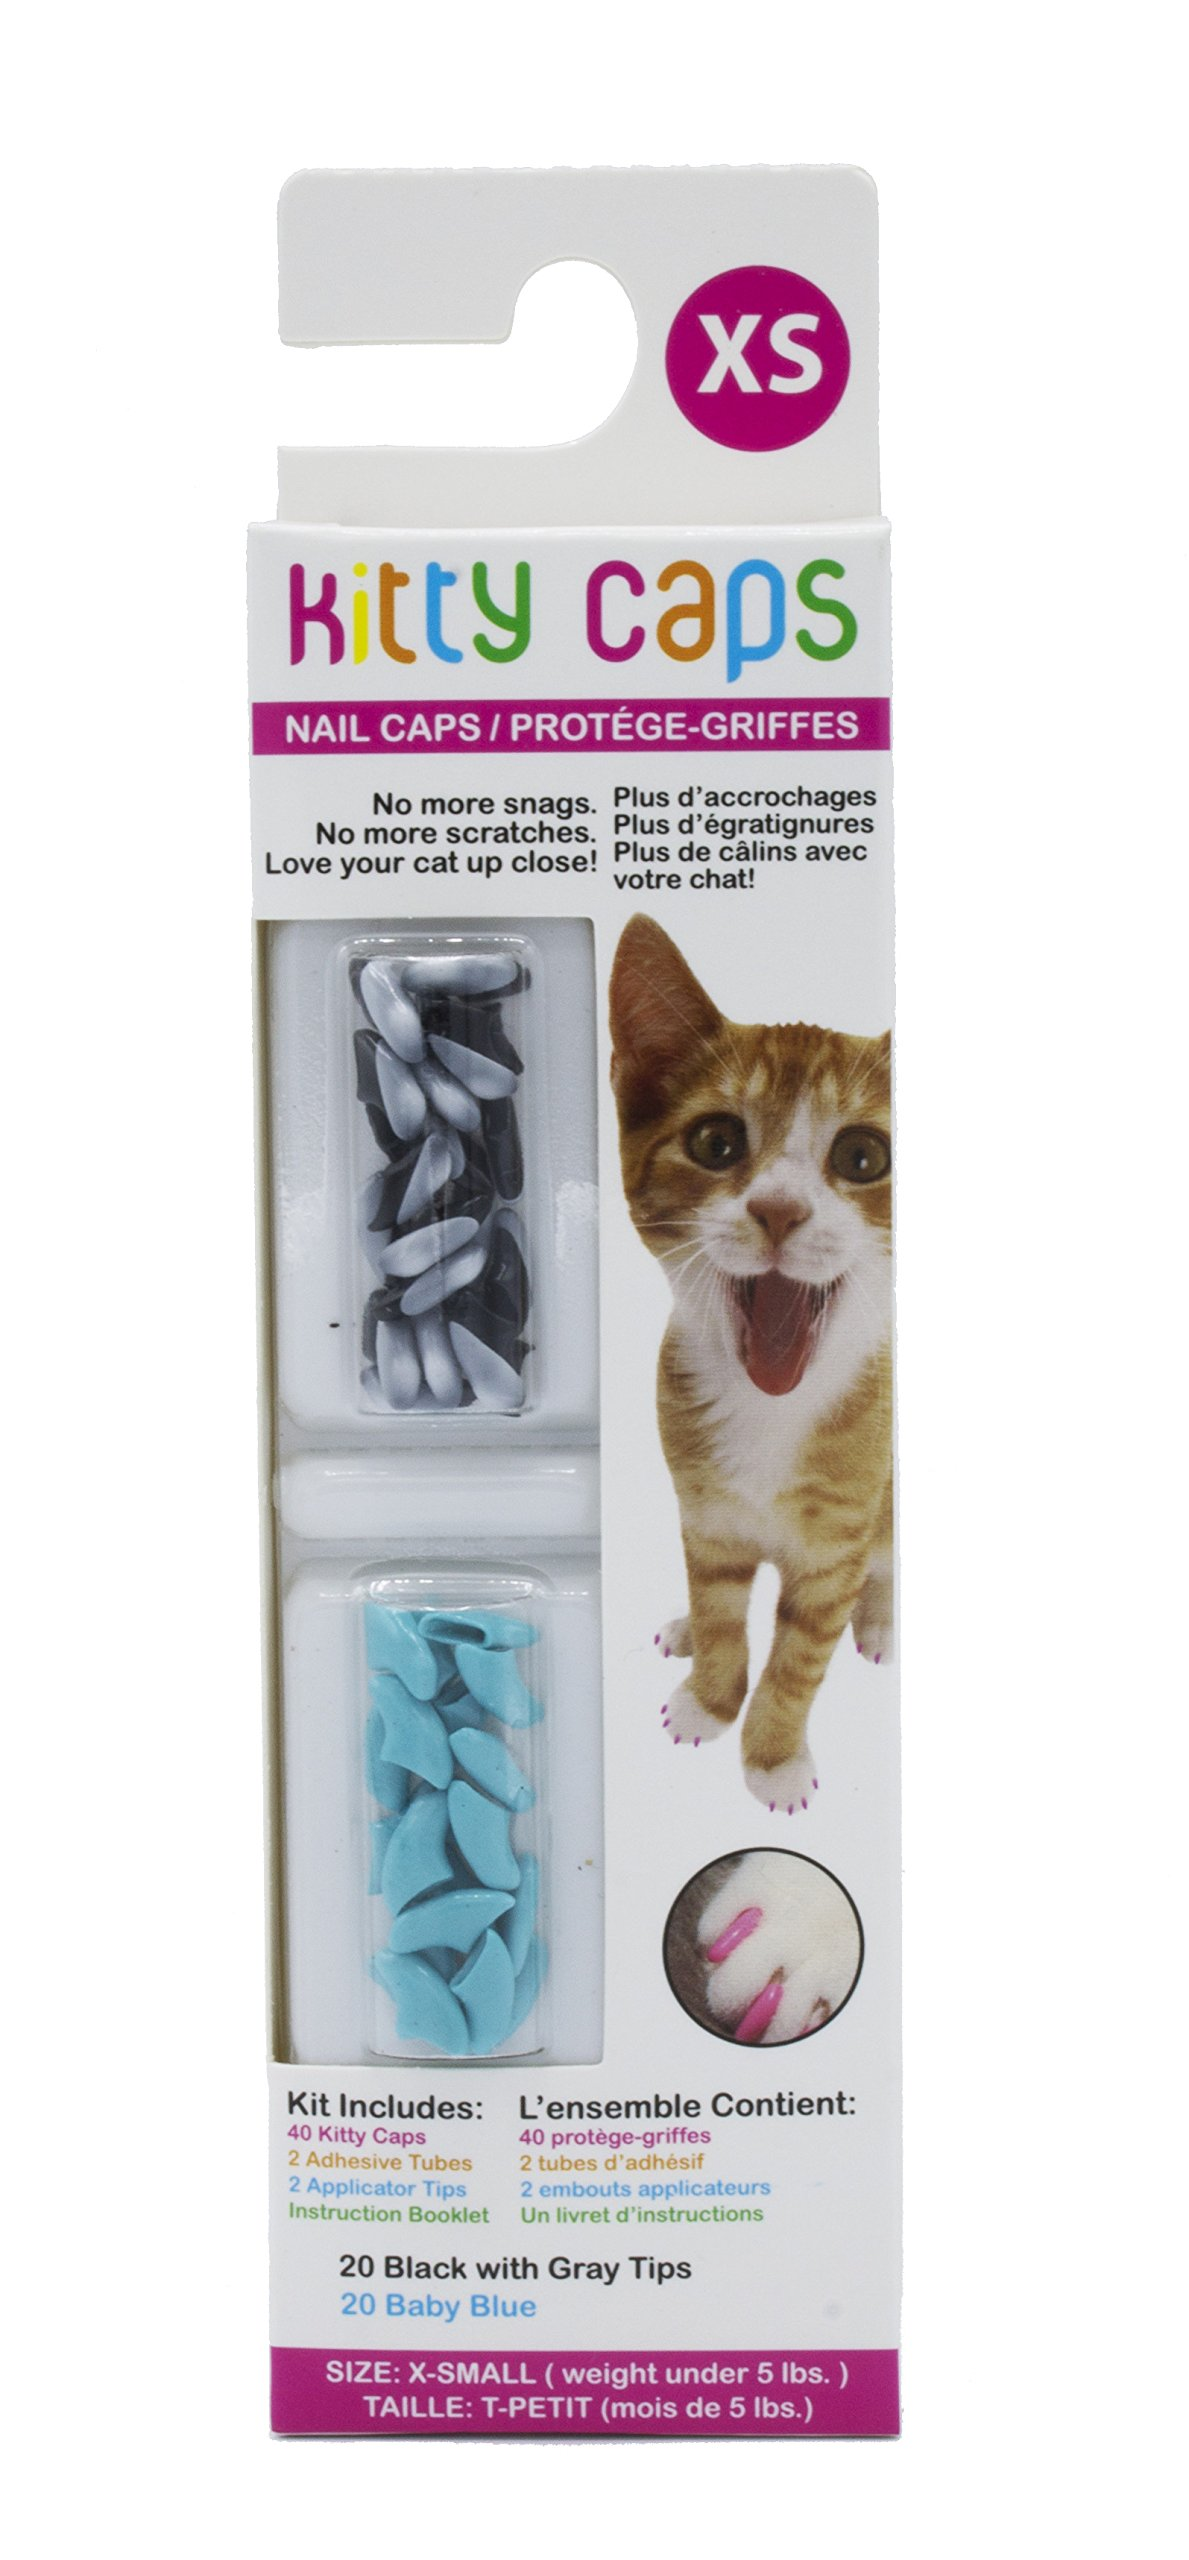 Kitty Caps Nail Caps for Cats | Safe & Stylish Alternative to Declawing | Stops Snags and Scratches, X-Small (Under 5 lbs), Black with Gray Tips & Baby Blue